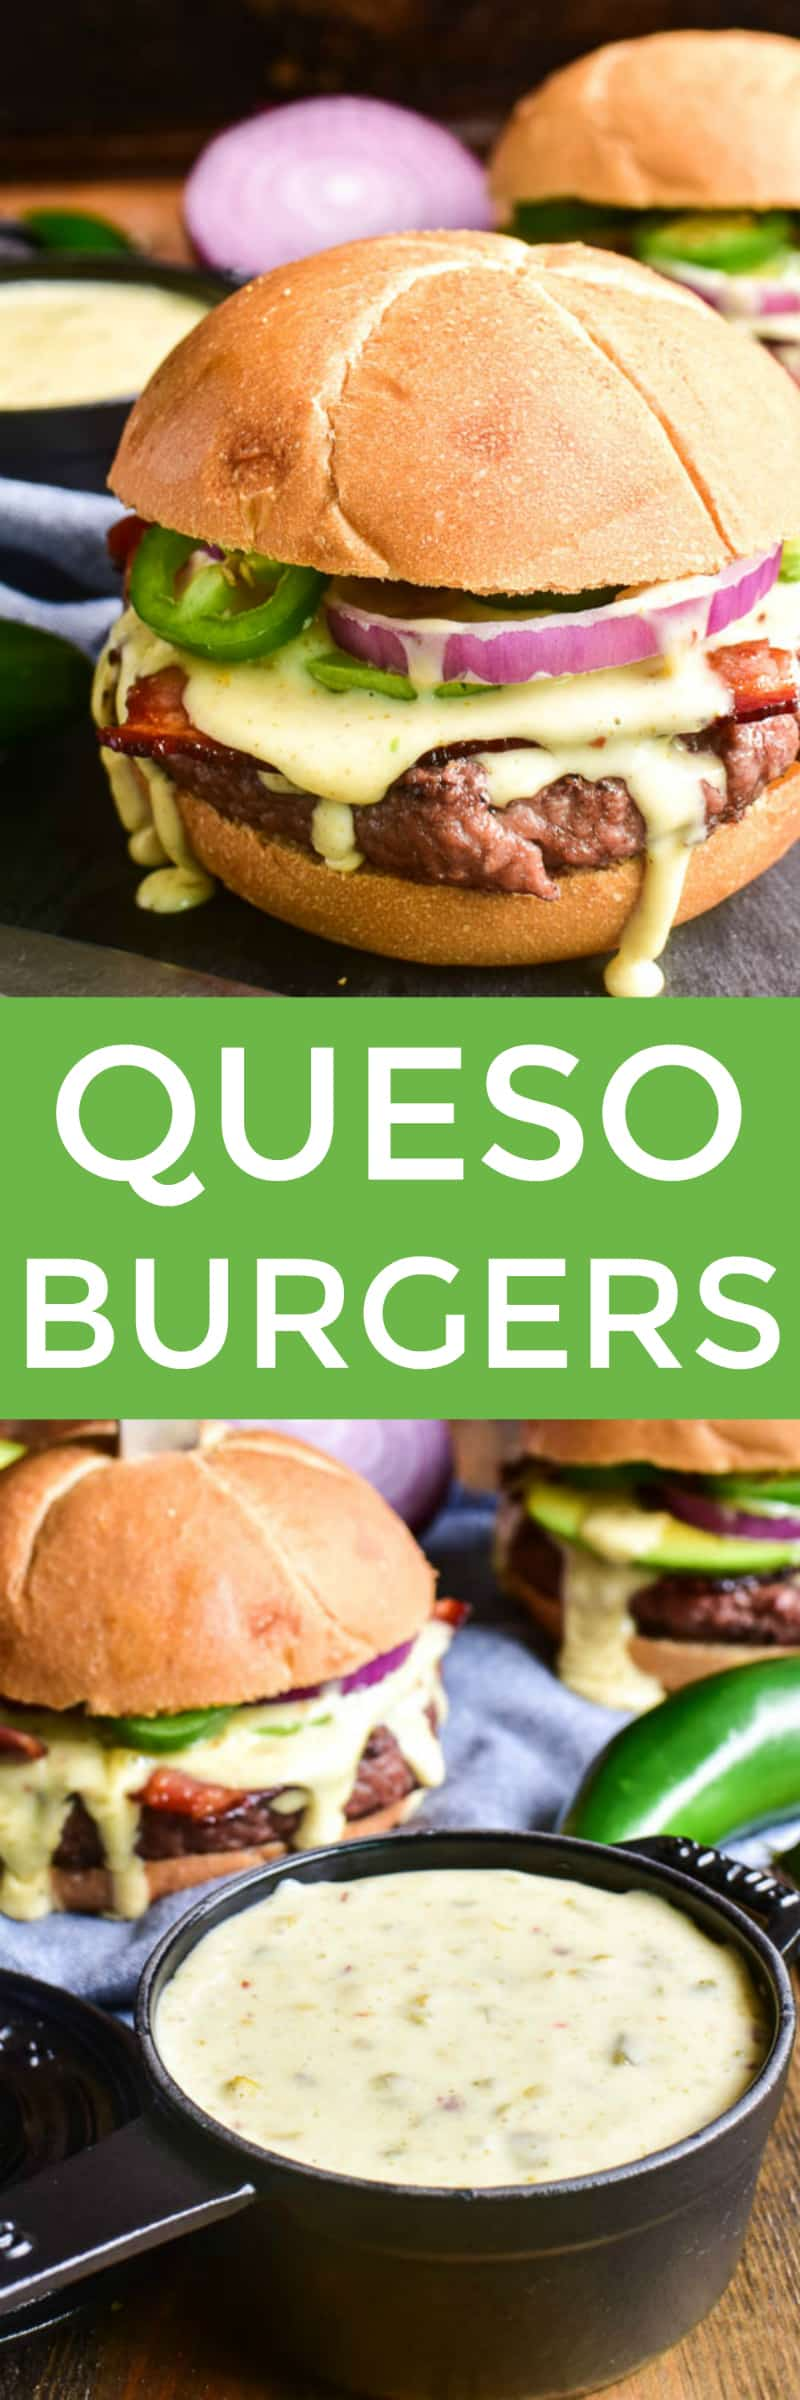 Collage image of Queso Burgers and homemade Queso